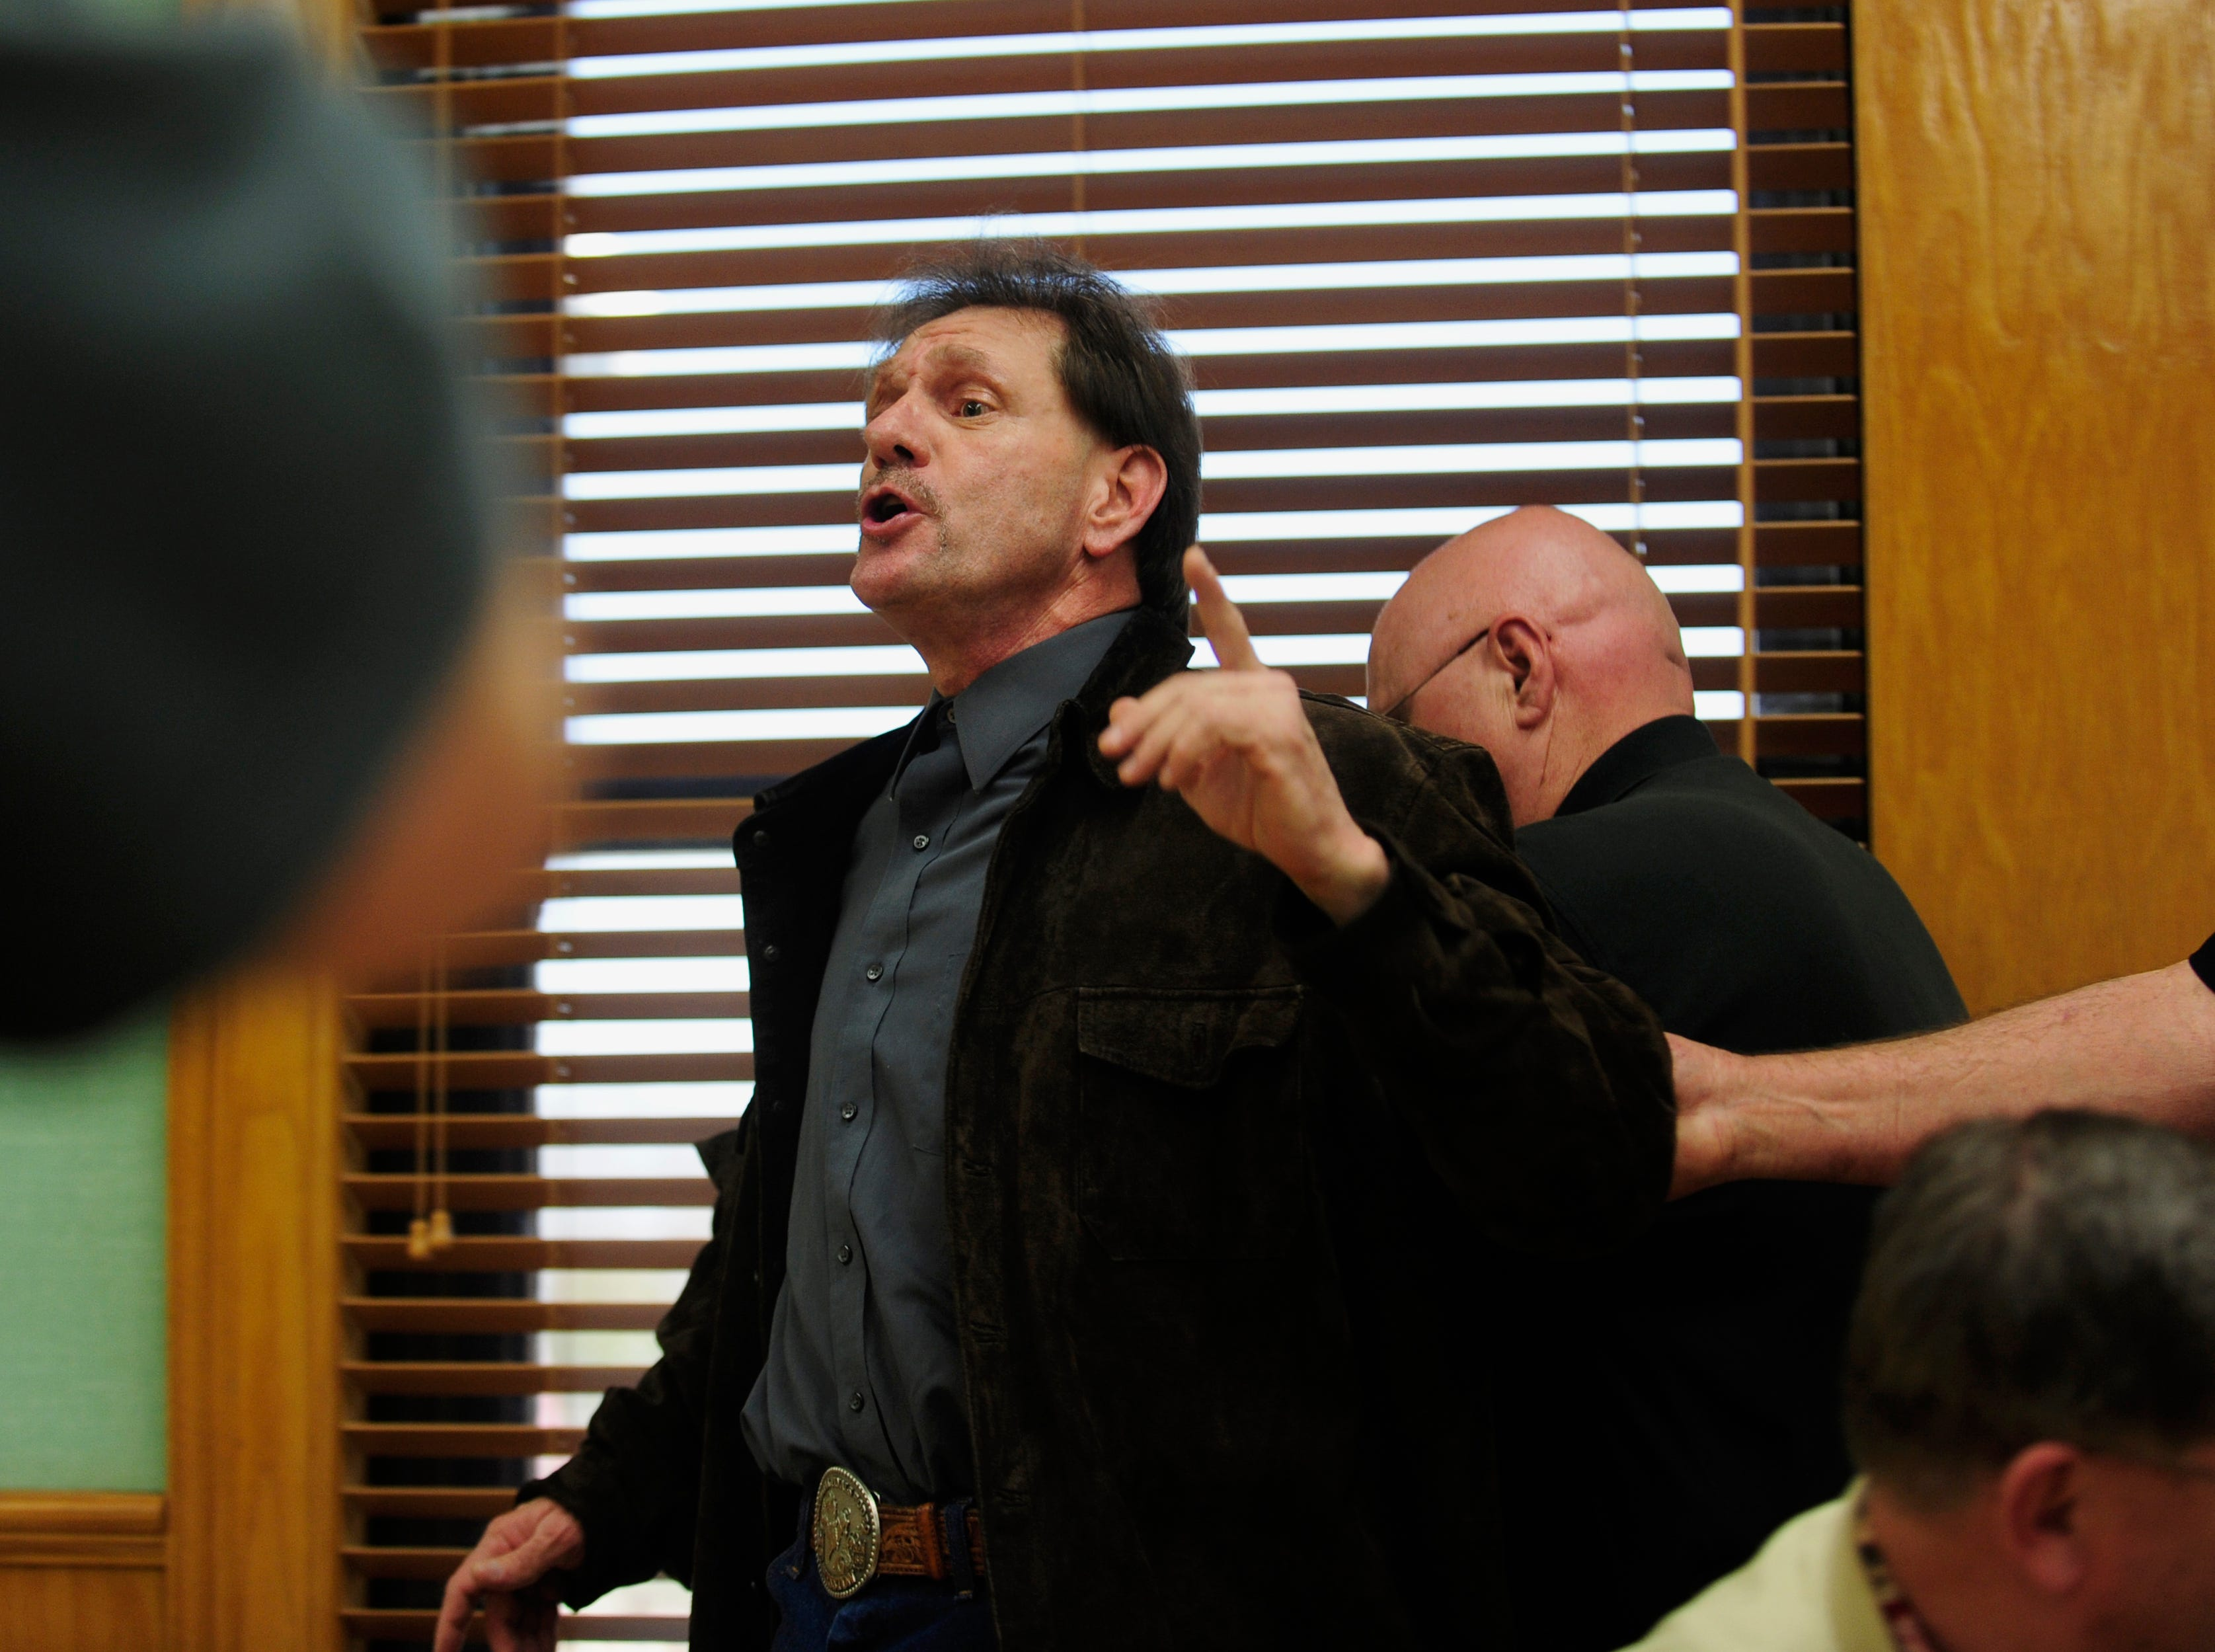 Leon Houston, center, continues to yell as he is taken into custody Friday, Mar. 19, 2010 by Roane County Sheriff Major Ken Mynatt on contempt of court after an outburst directed at Judge Kerry Blackwood. The outburst came during a motions hearing for Leon's brother Rocky Joe Houston.